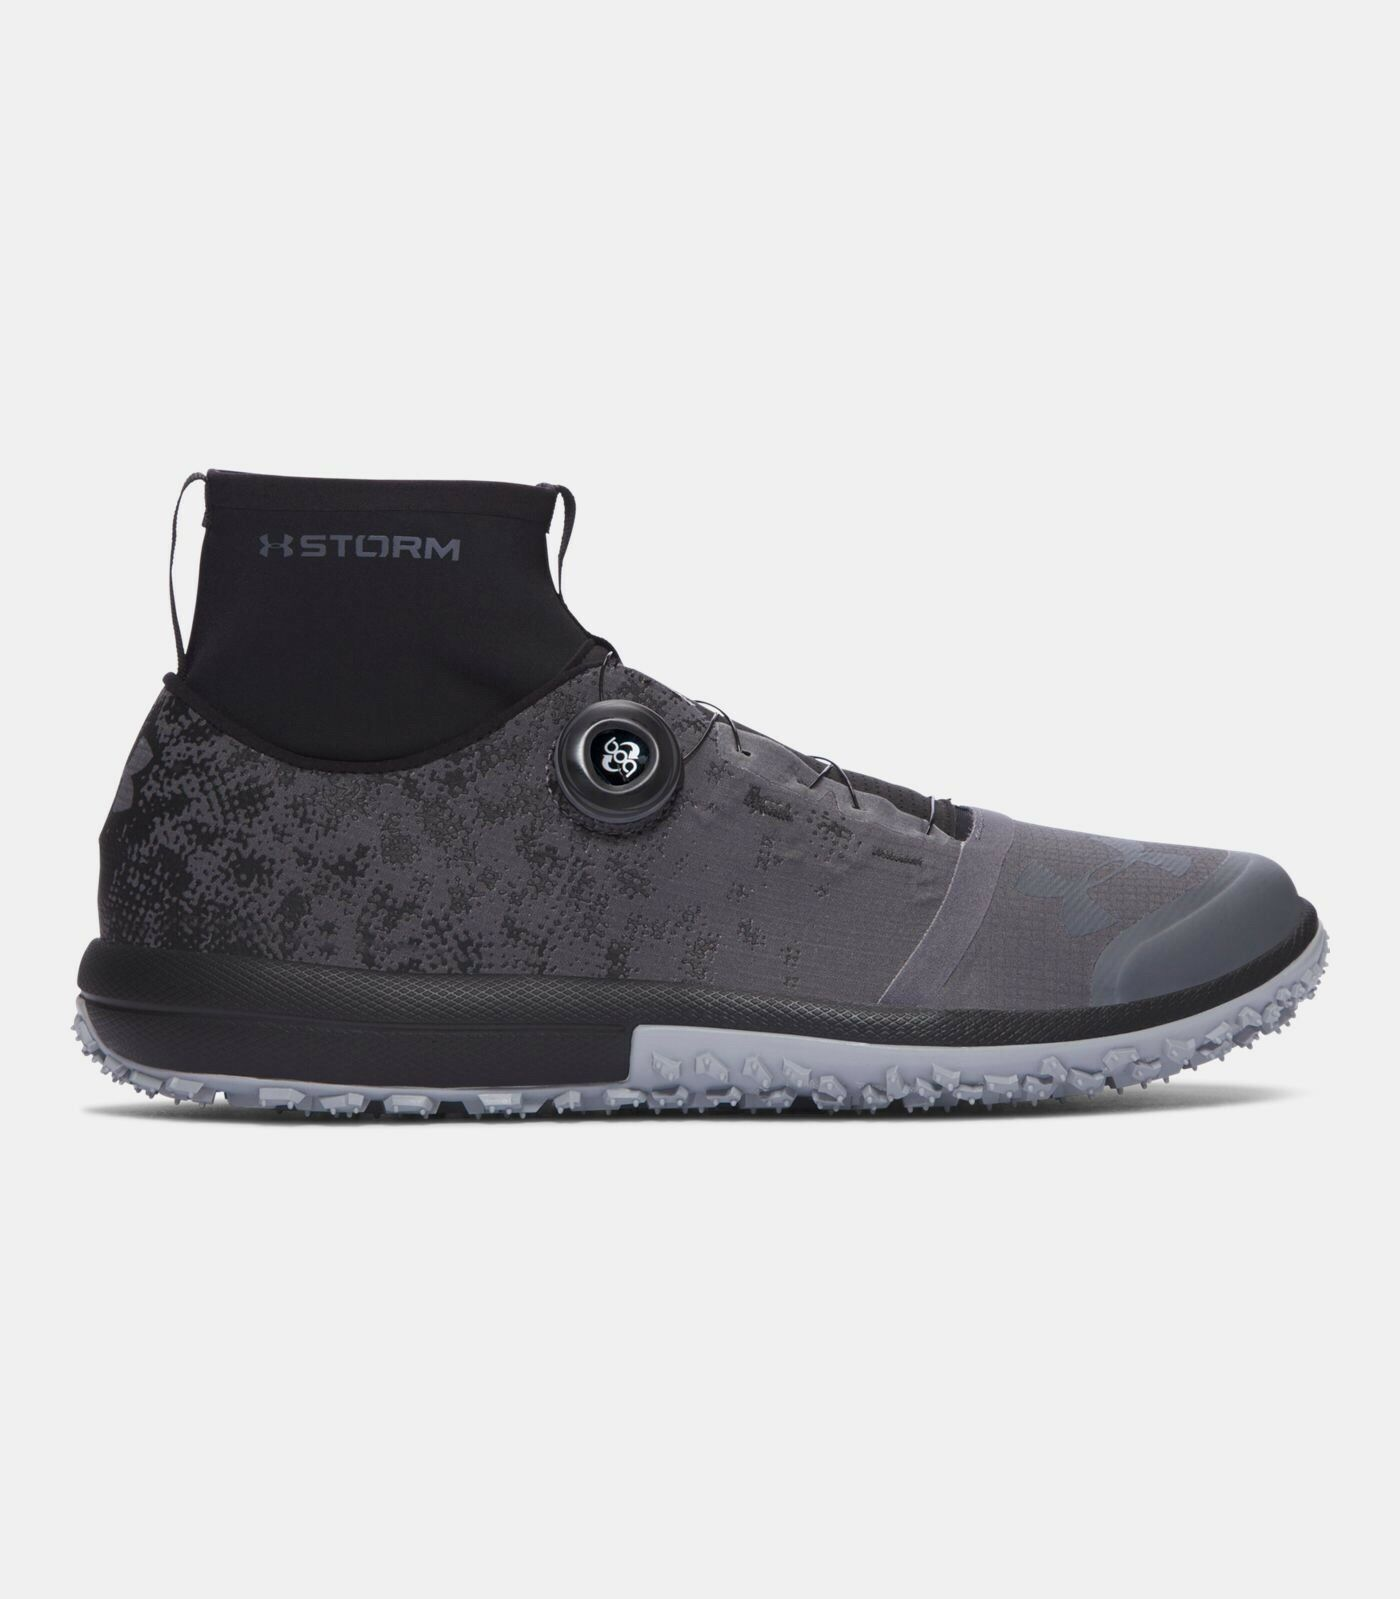 Under Armour Speed Sz Tire Ascent Mid Hiking Schuhe Michelin Sz Speed 11 1289139-076 84ae86